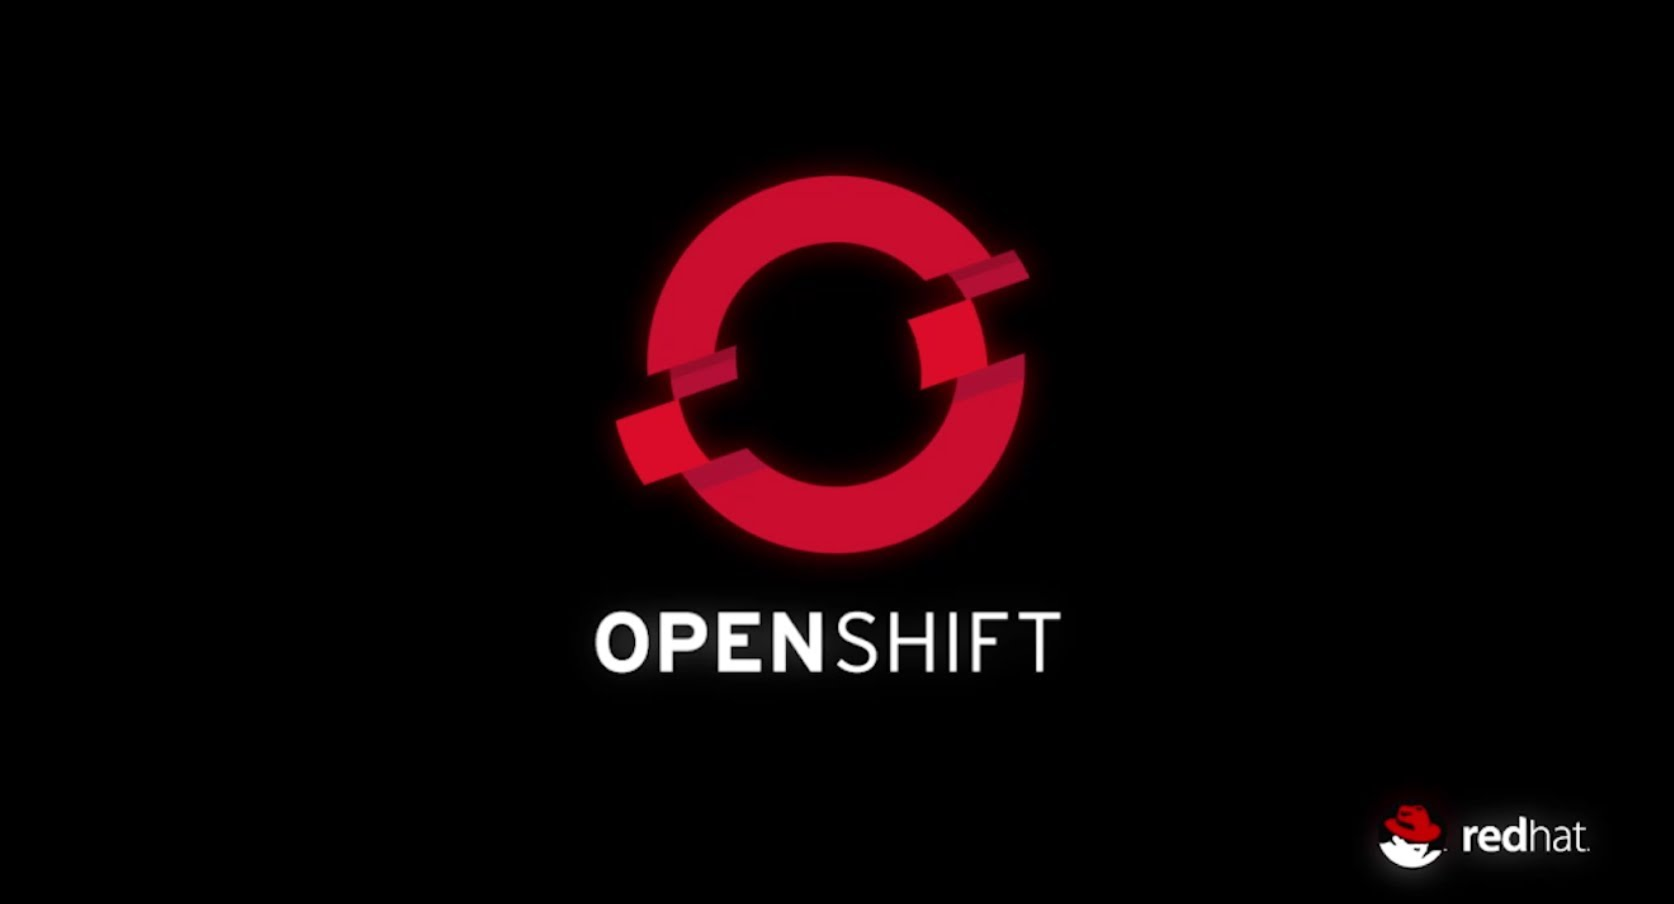 Red Hat Open Shift